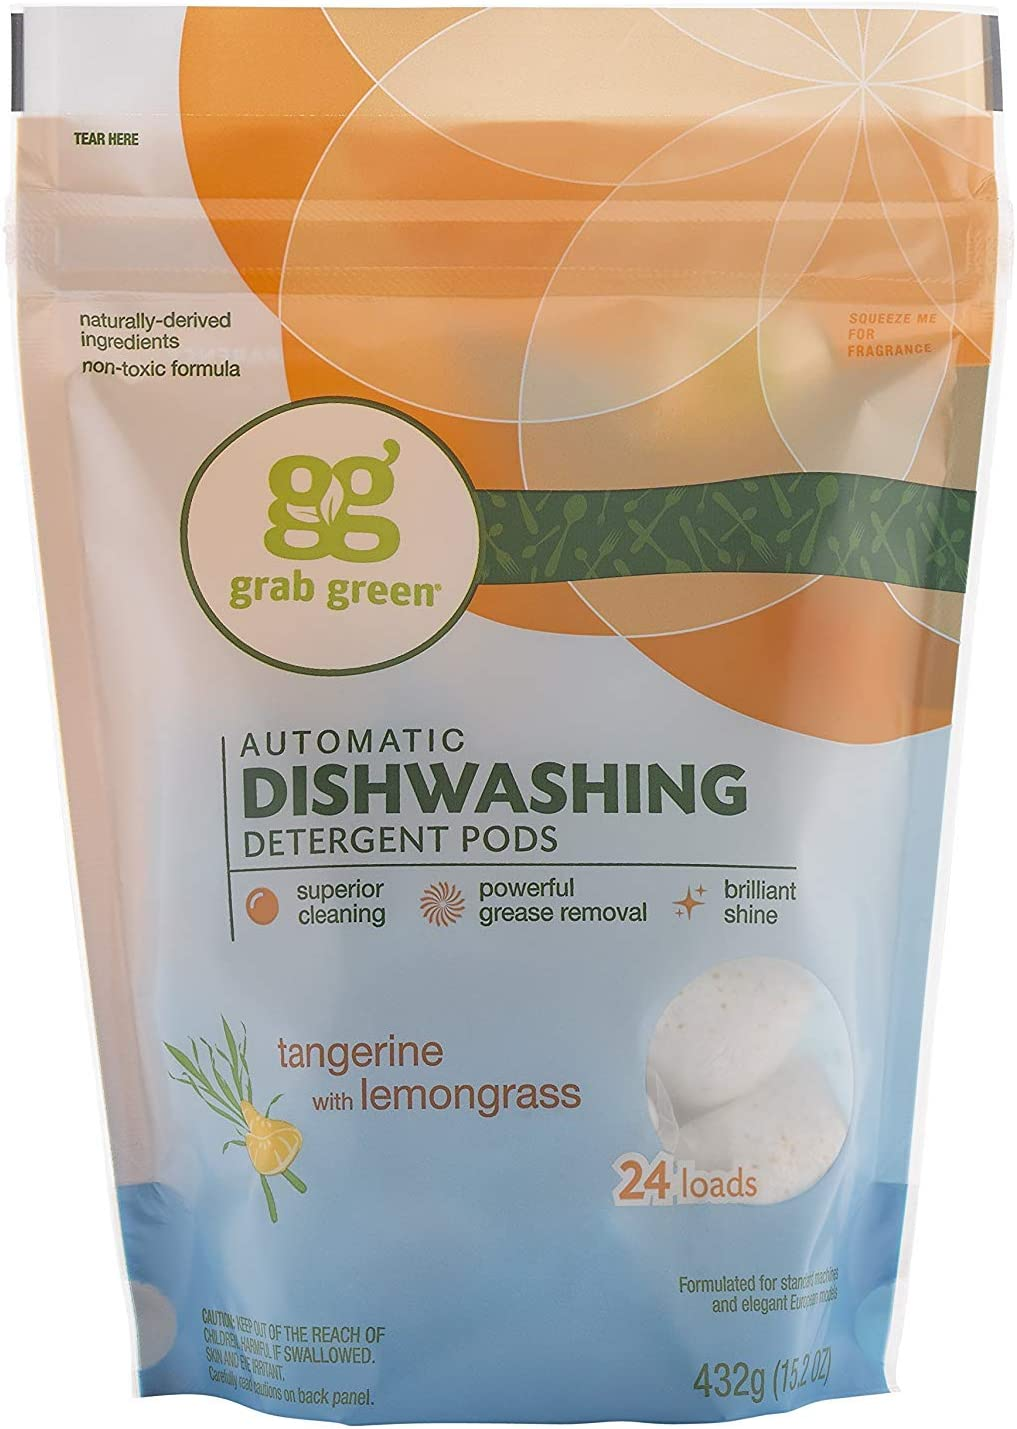 GrabGreen Automatic Dishwashing Detergent Tangerine with Lemongrass - 24 per Pack - 6 Packs per case.